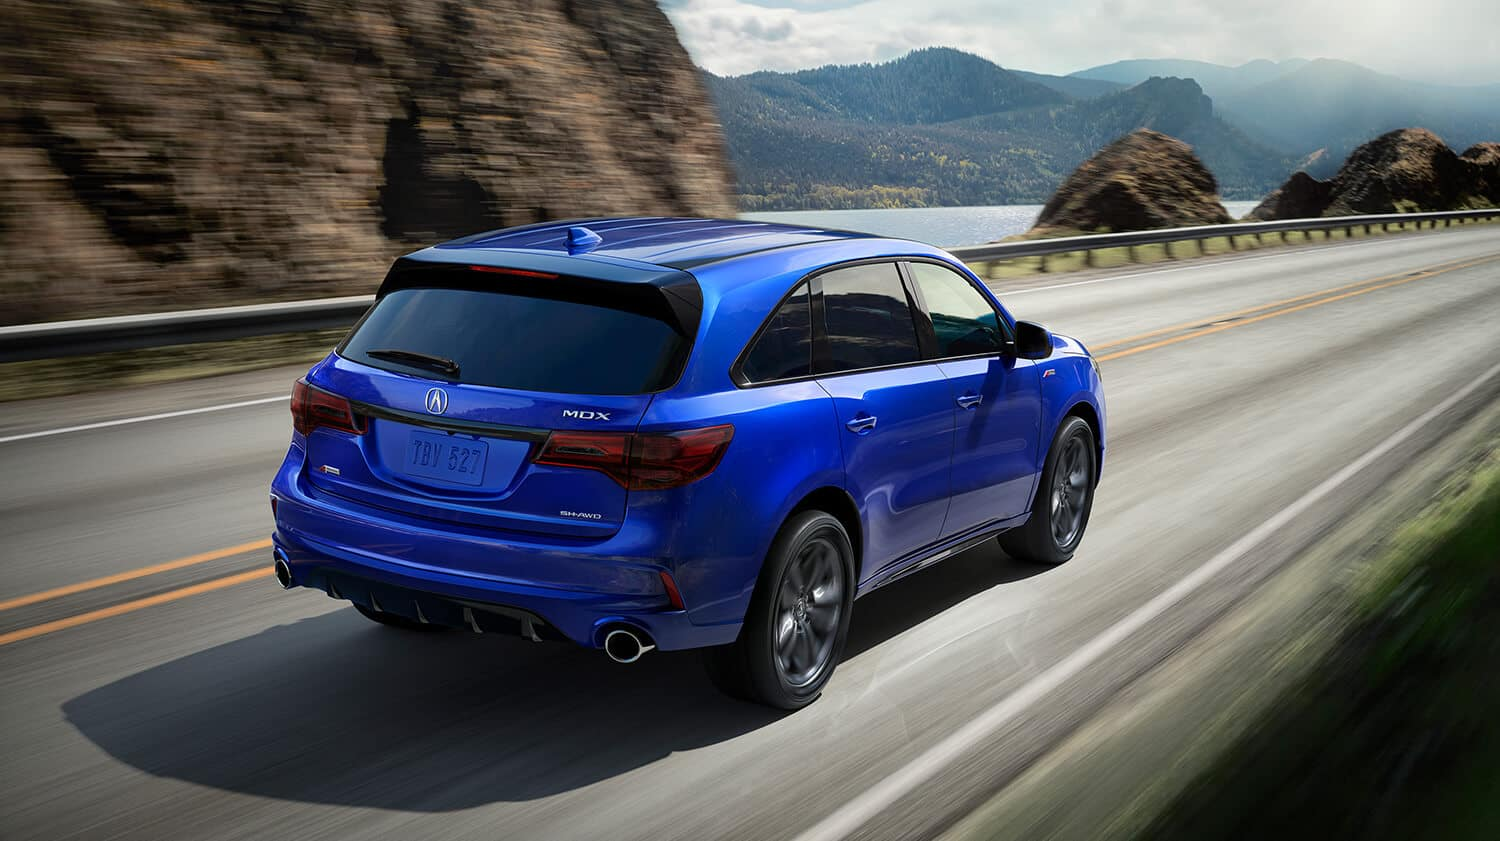 2019 Acura MDX Exterior Rear Angle Passenger Side Blue